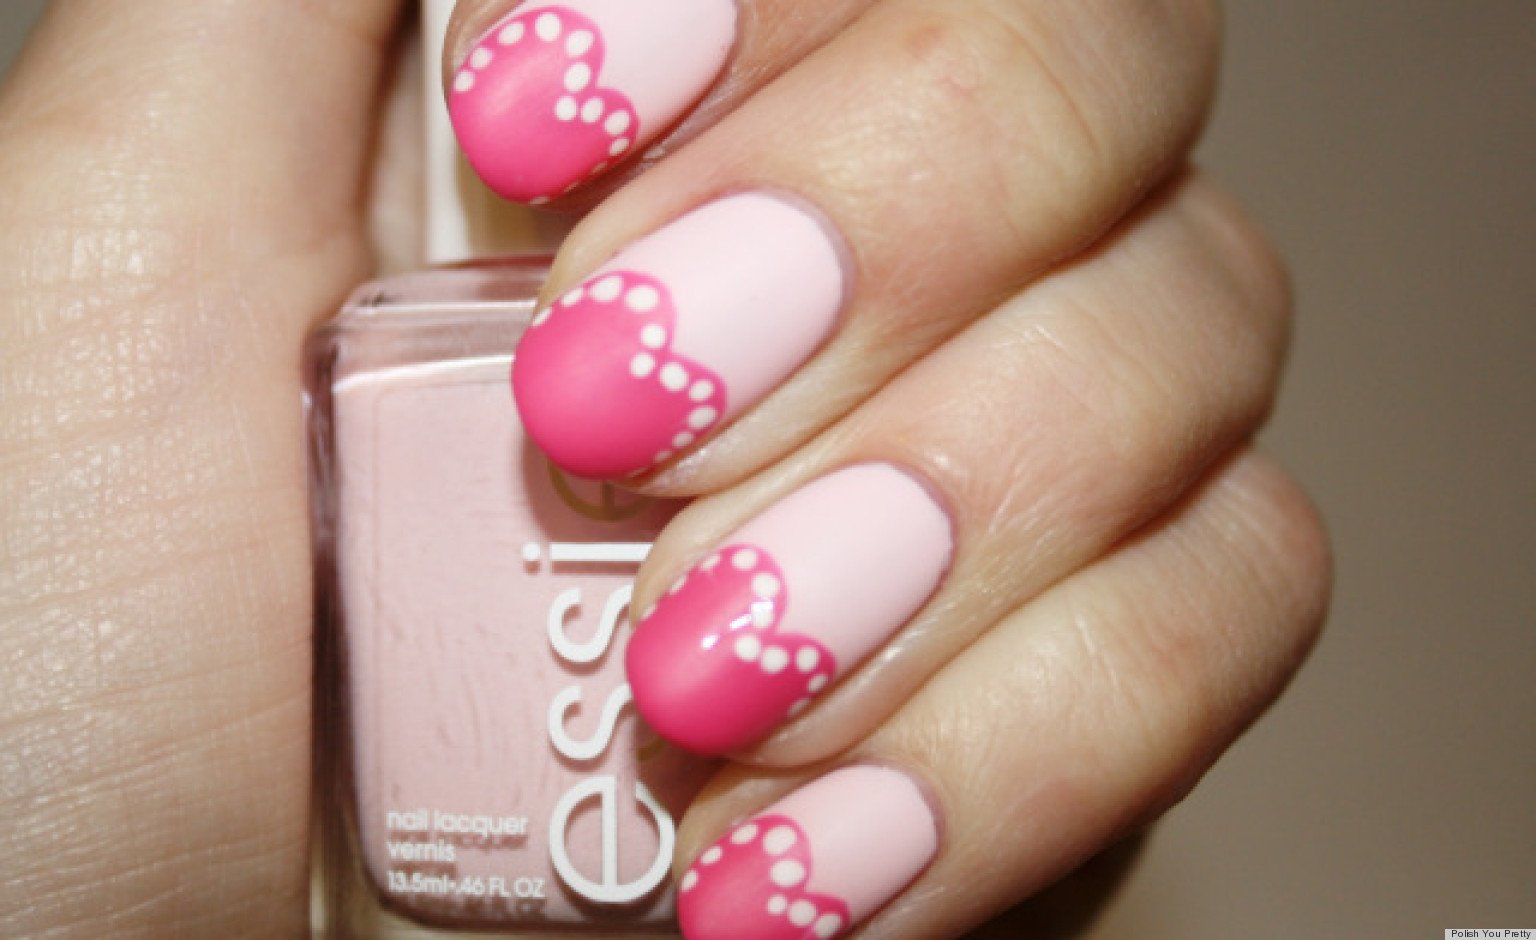 valentines day nail art pretty in pink hearts manicure photo huffpost - Valentines Nail